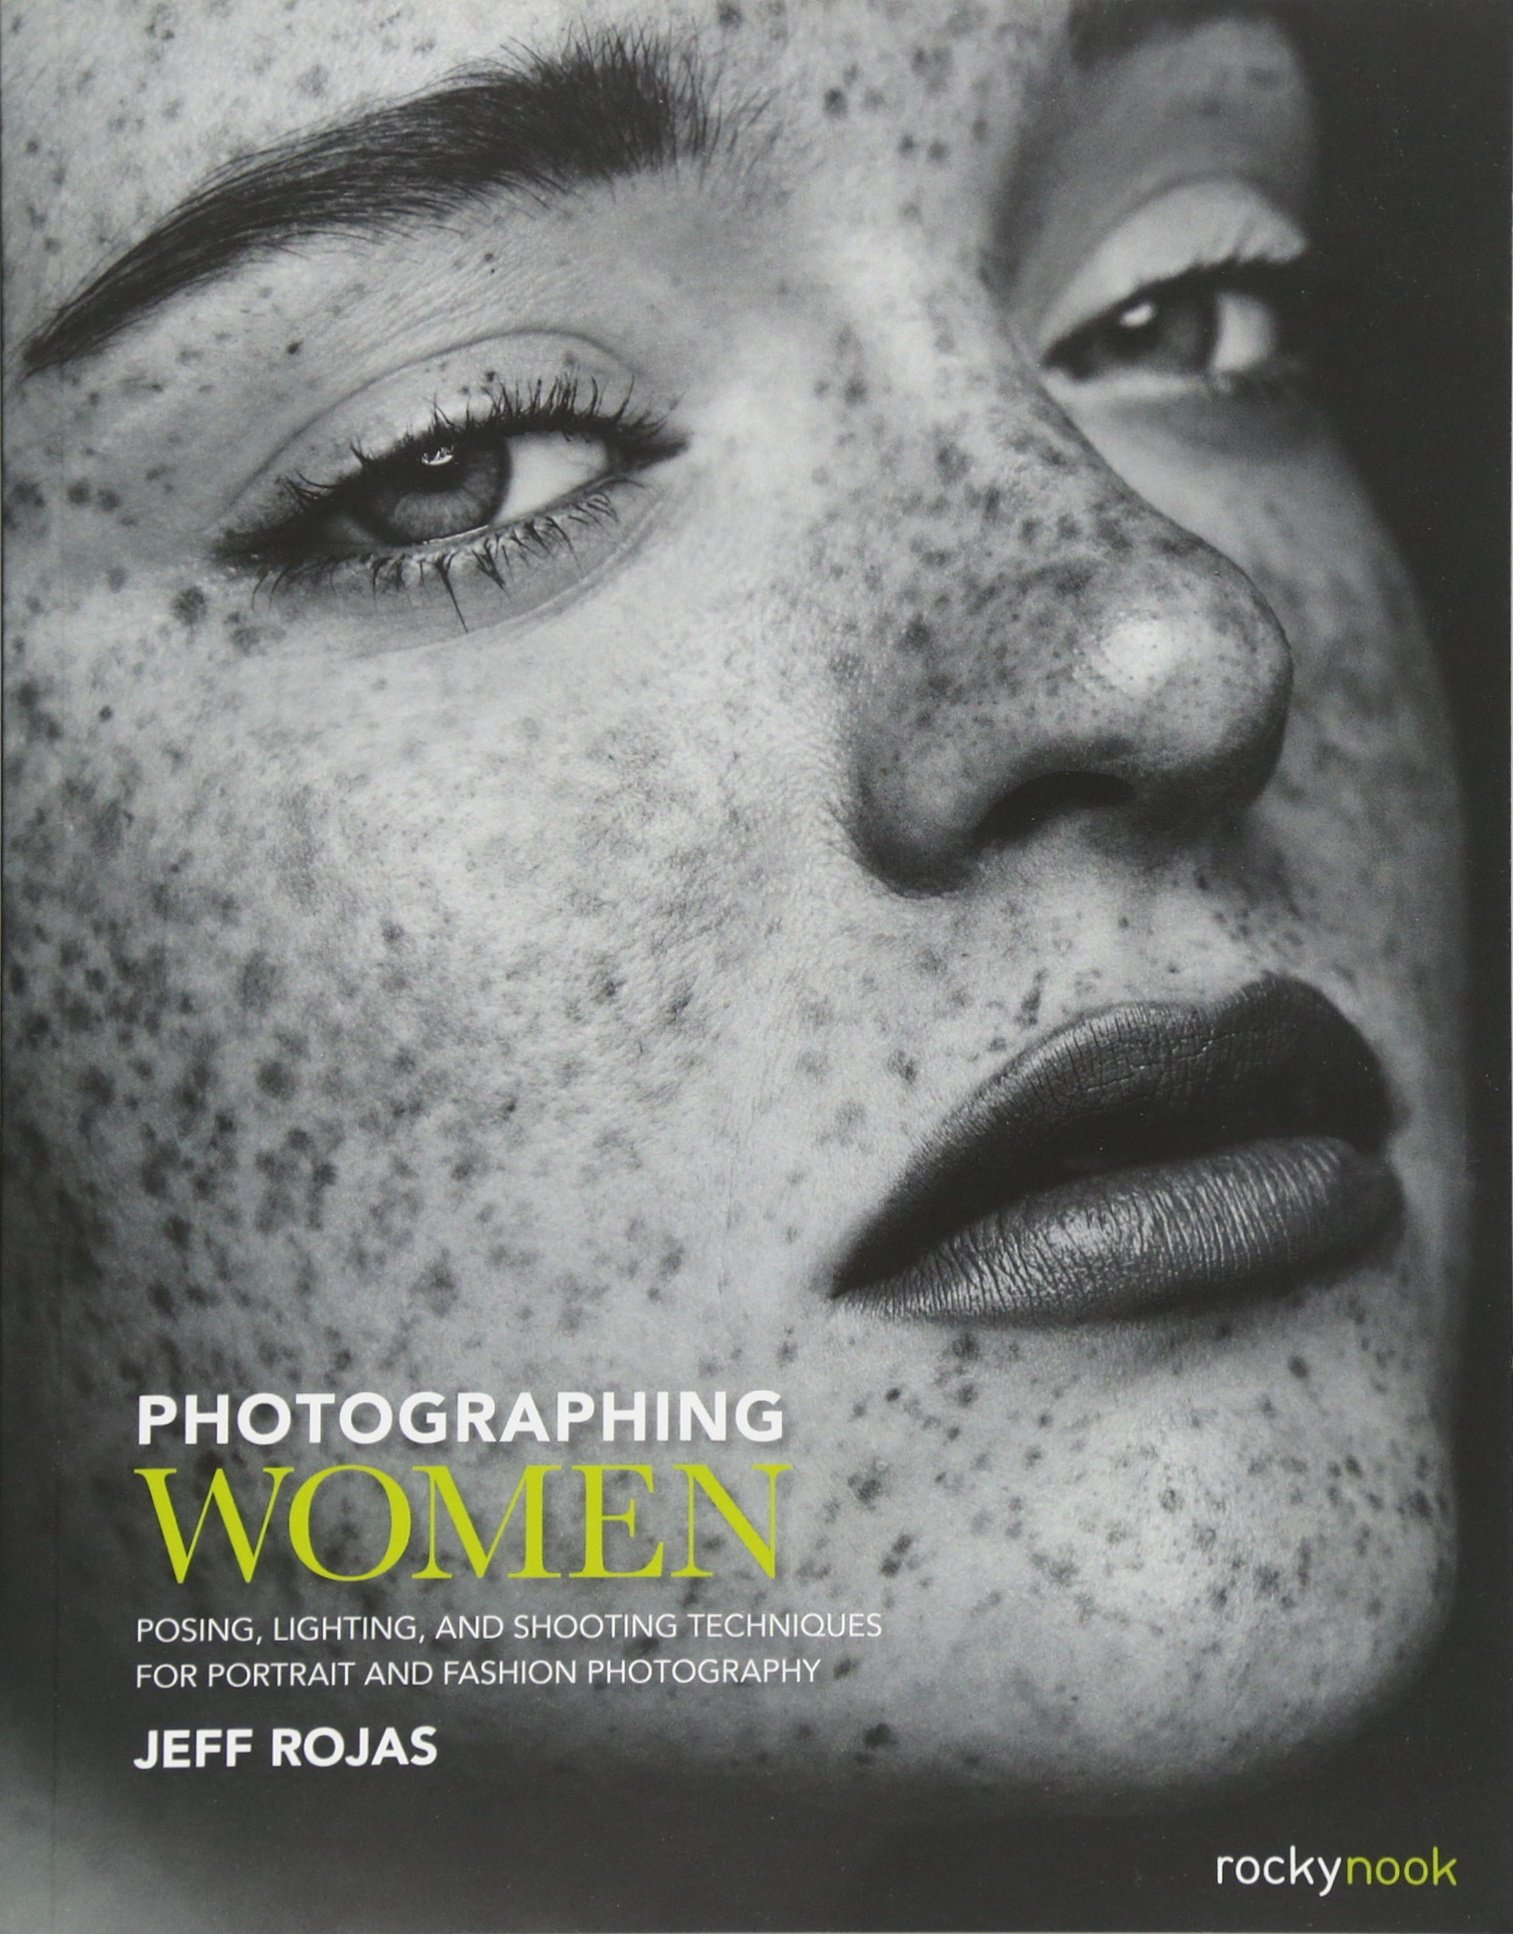 Amazon.com Photographing Women Posing Lighting and Shooting Techniques for Portrait and Fashion Photography (9781681981741) Jeff Rojas Books  sc 1 st  Amazon.com & Amazon.com: Photographing Women: Posing Lighting and Shooting ...